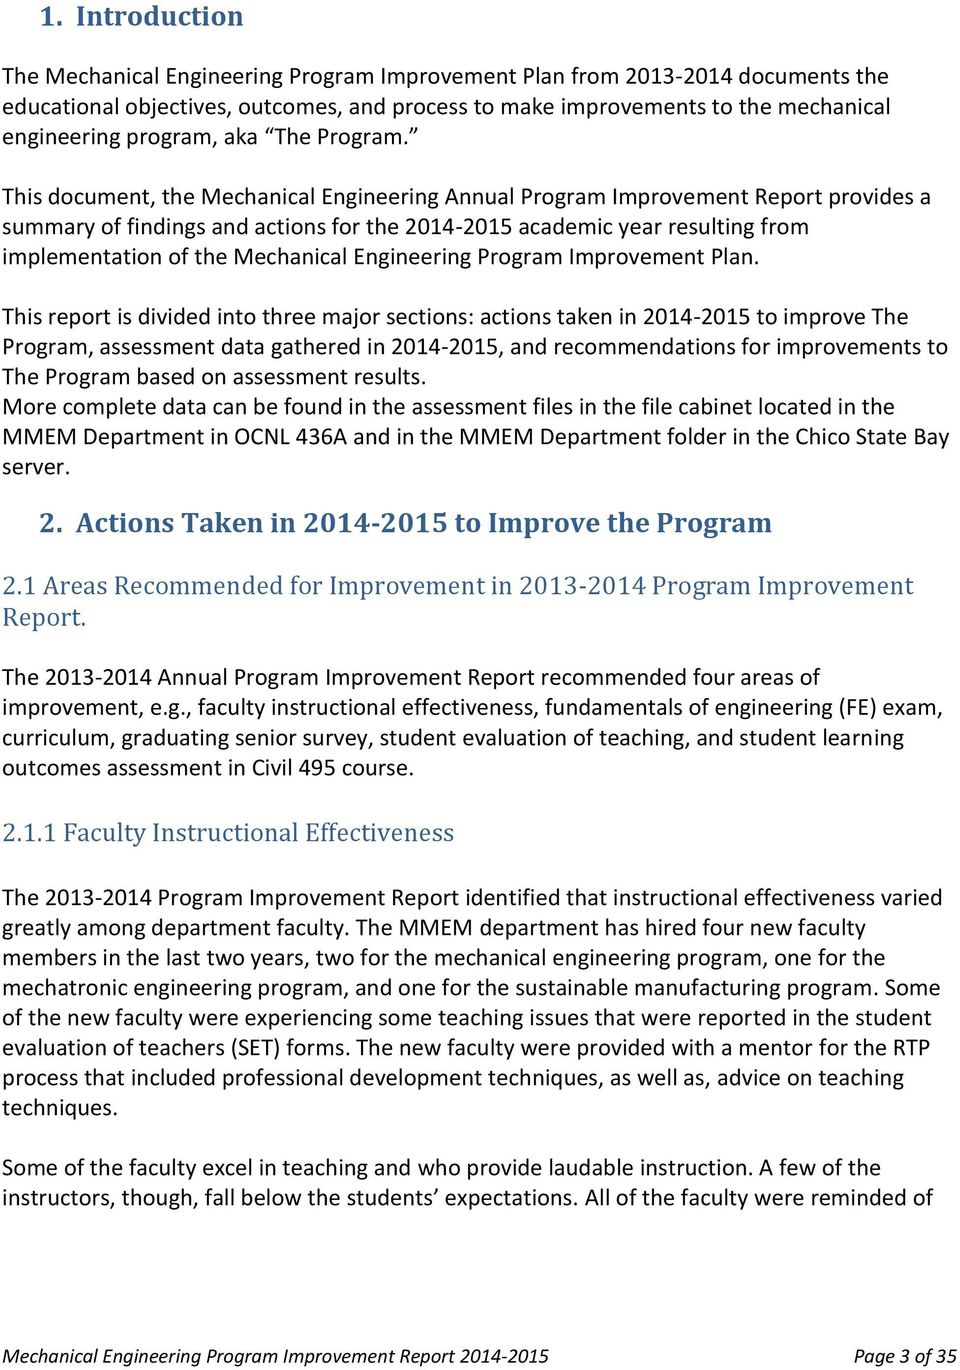 This document, the Mechanical Engineering Annual Program Improvement Report provides a summary of findings and actions for the 2014-2015 academic year resulting from implementation of the Mechanical